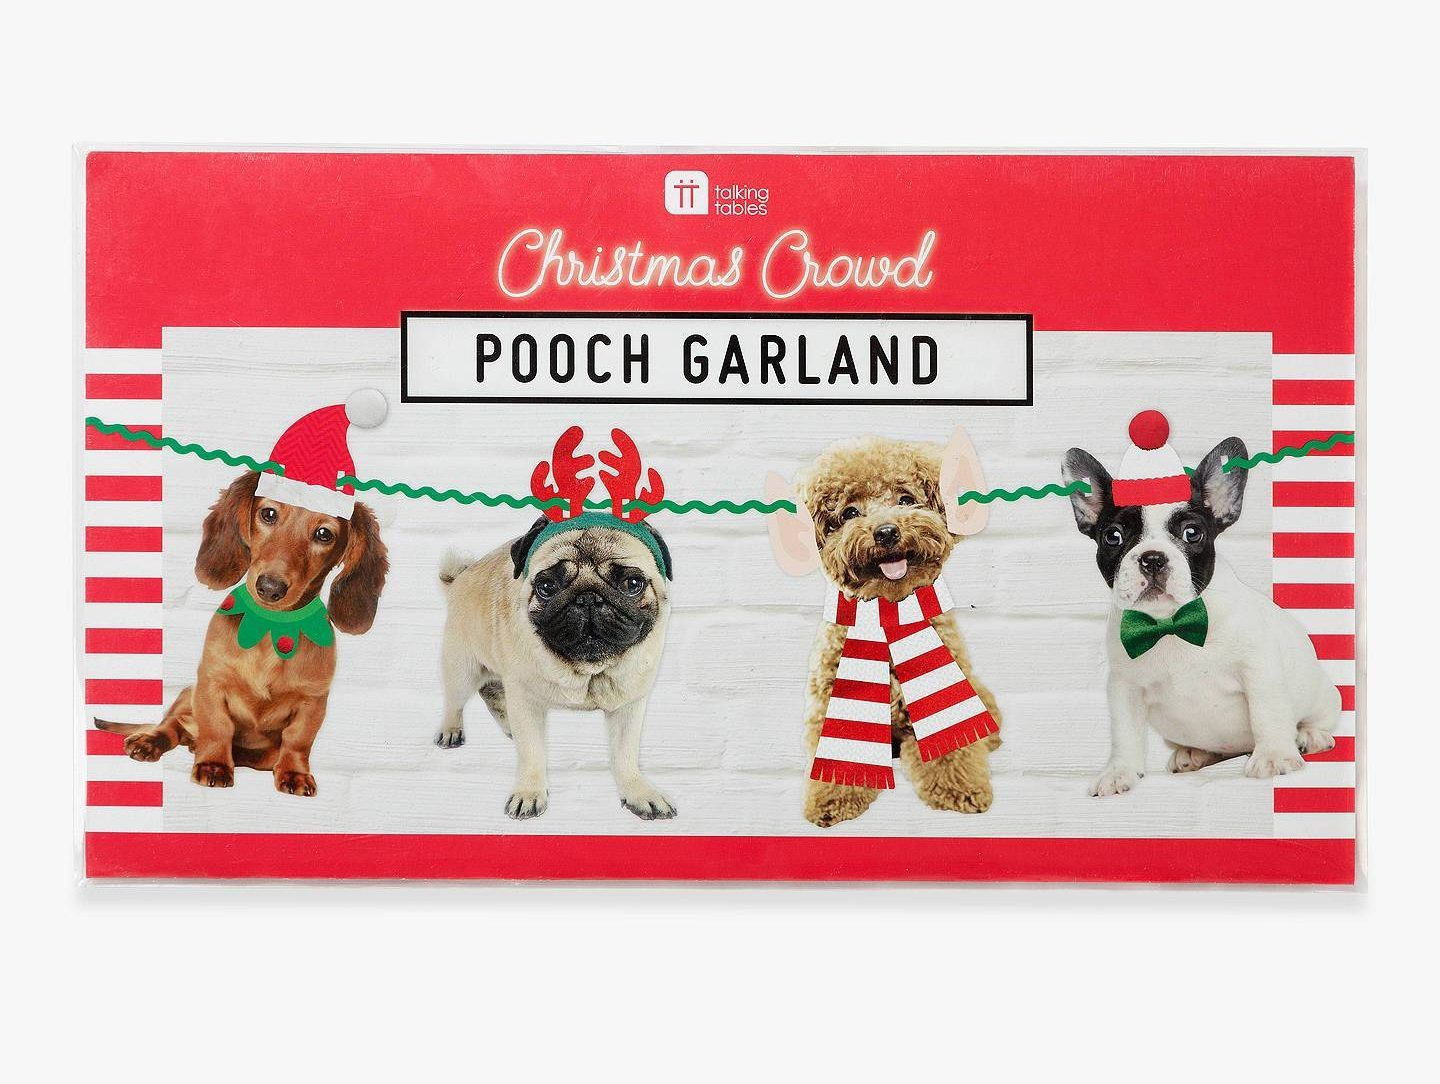 Don't just stick to standard baubles and tinsel - try some wacky decorations like this pooch garland